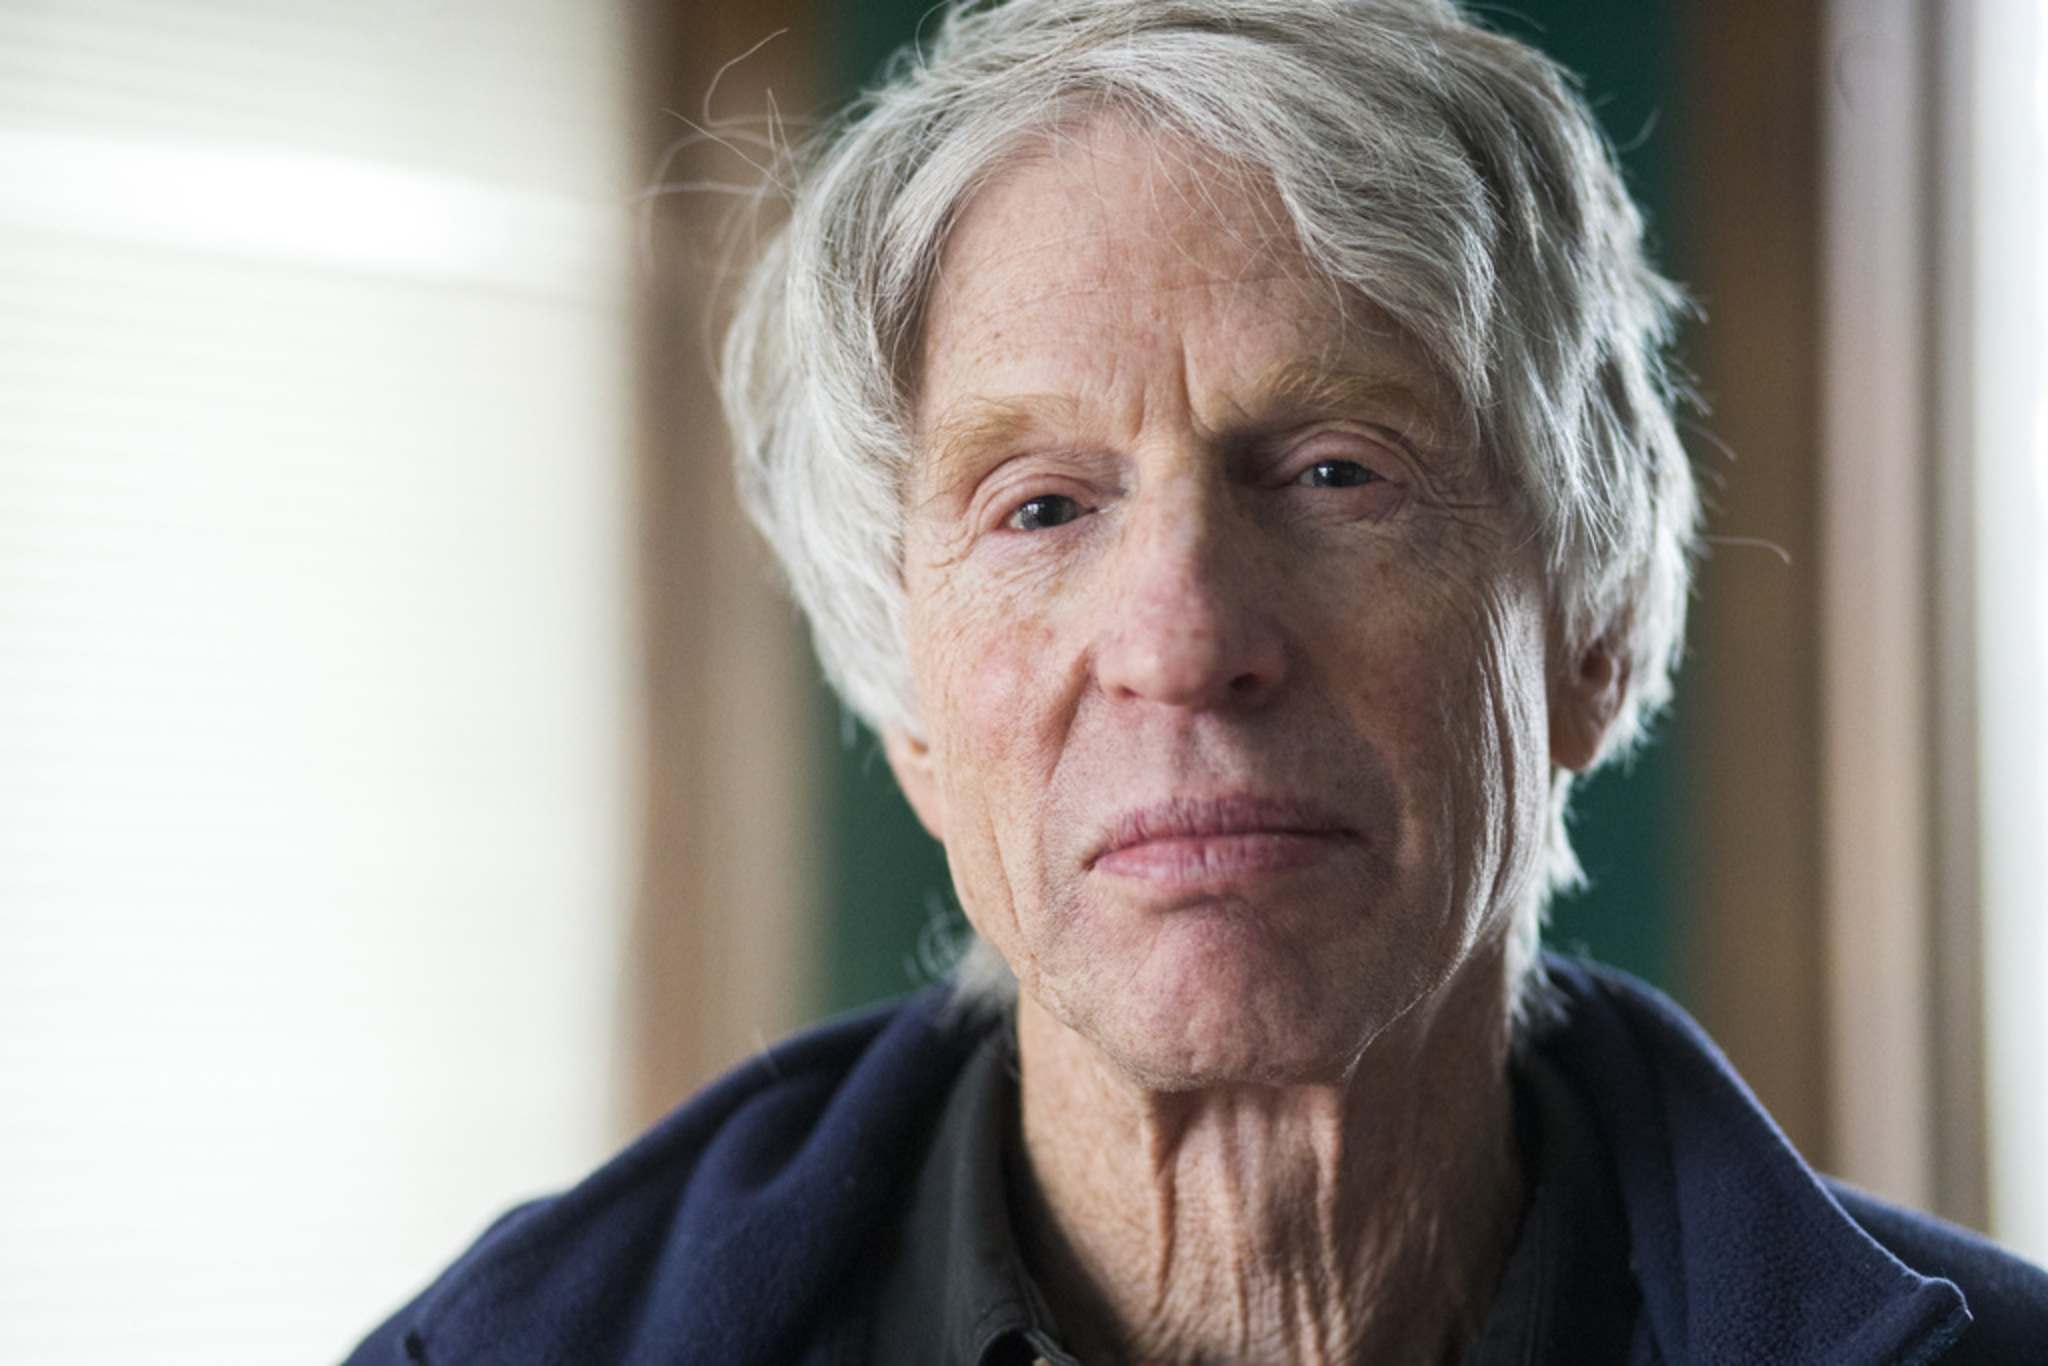 Arthur Schafer, founding director of the University of Manitoba's Centre for Professional and Applied Ethics, said decision-making about closing schools profoundly affects lives and yet the province has not provided clear justification for such practices. (Mikaela MacKenzie / Winnipeg Free Press files)